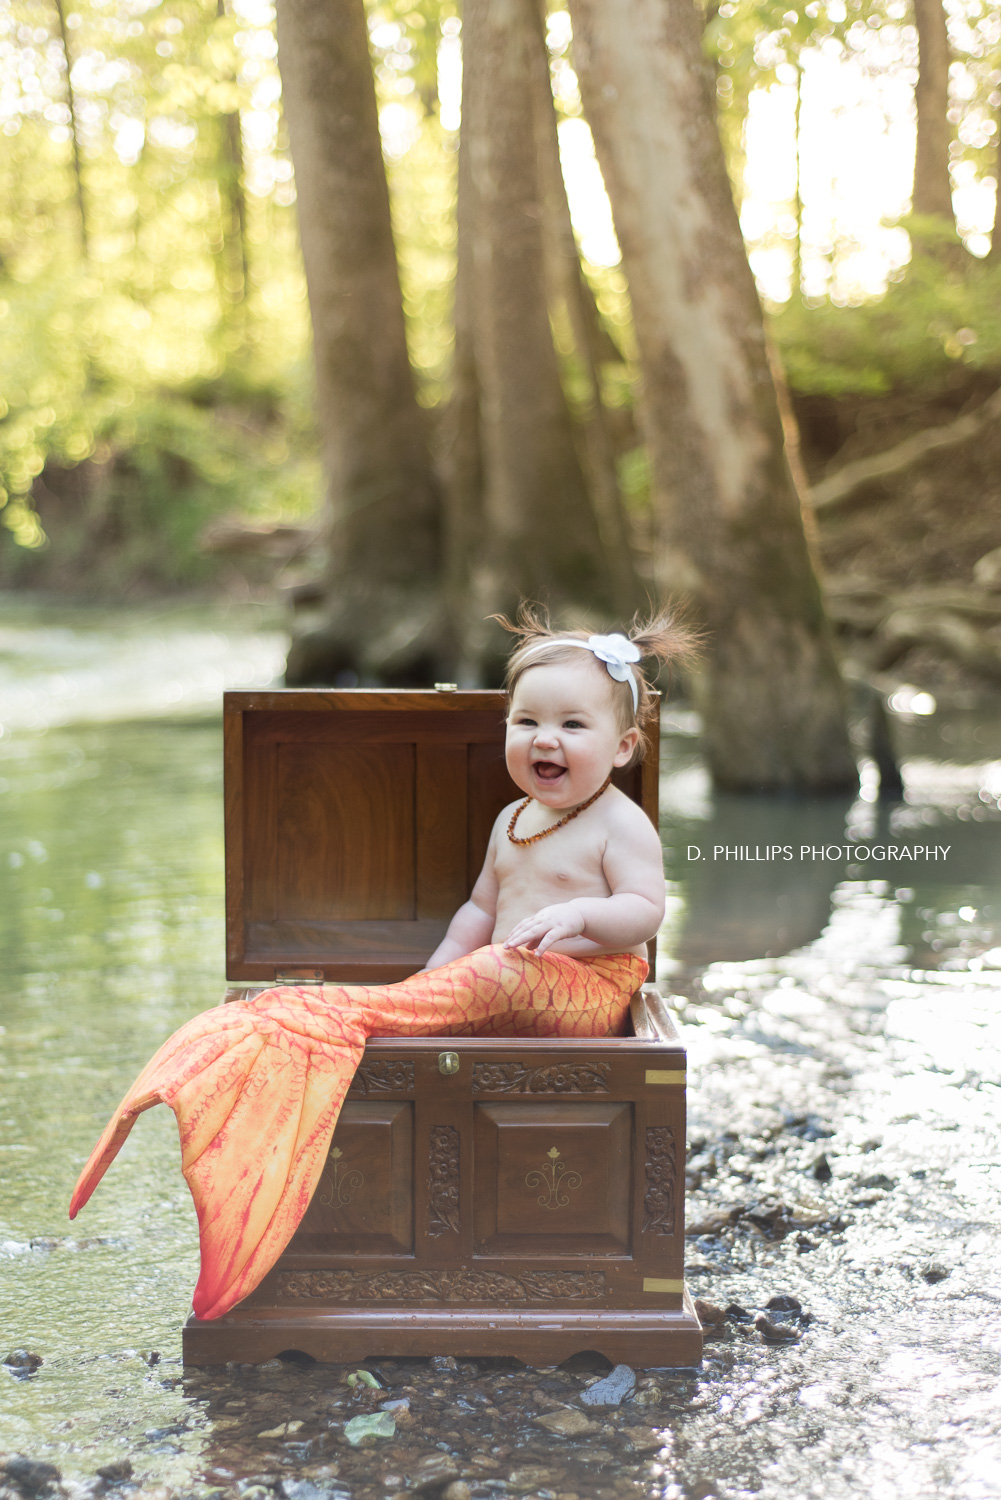 Baby mermaid pictures! www.dphillipsphotography.com/blog